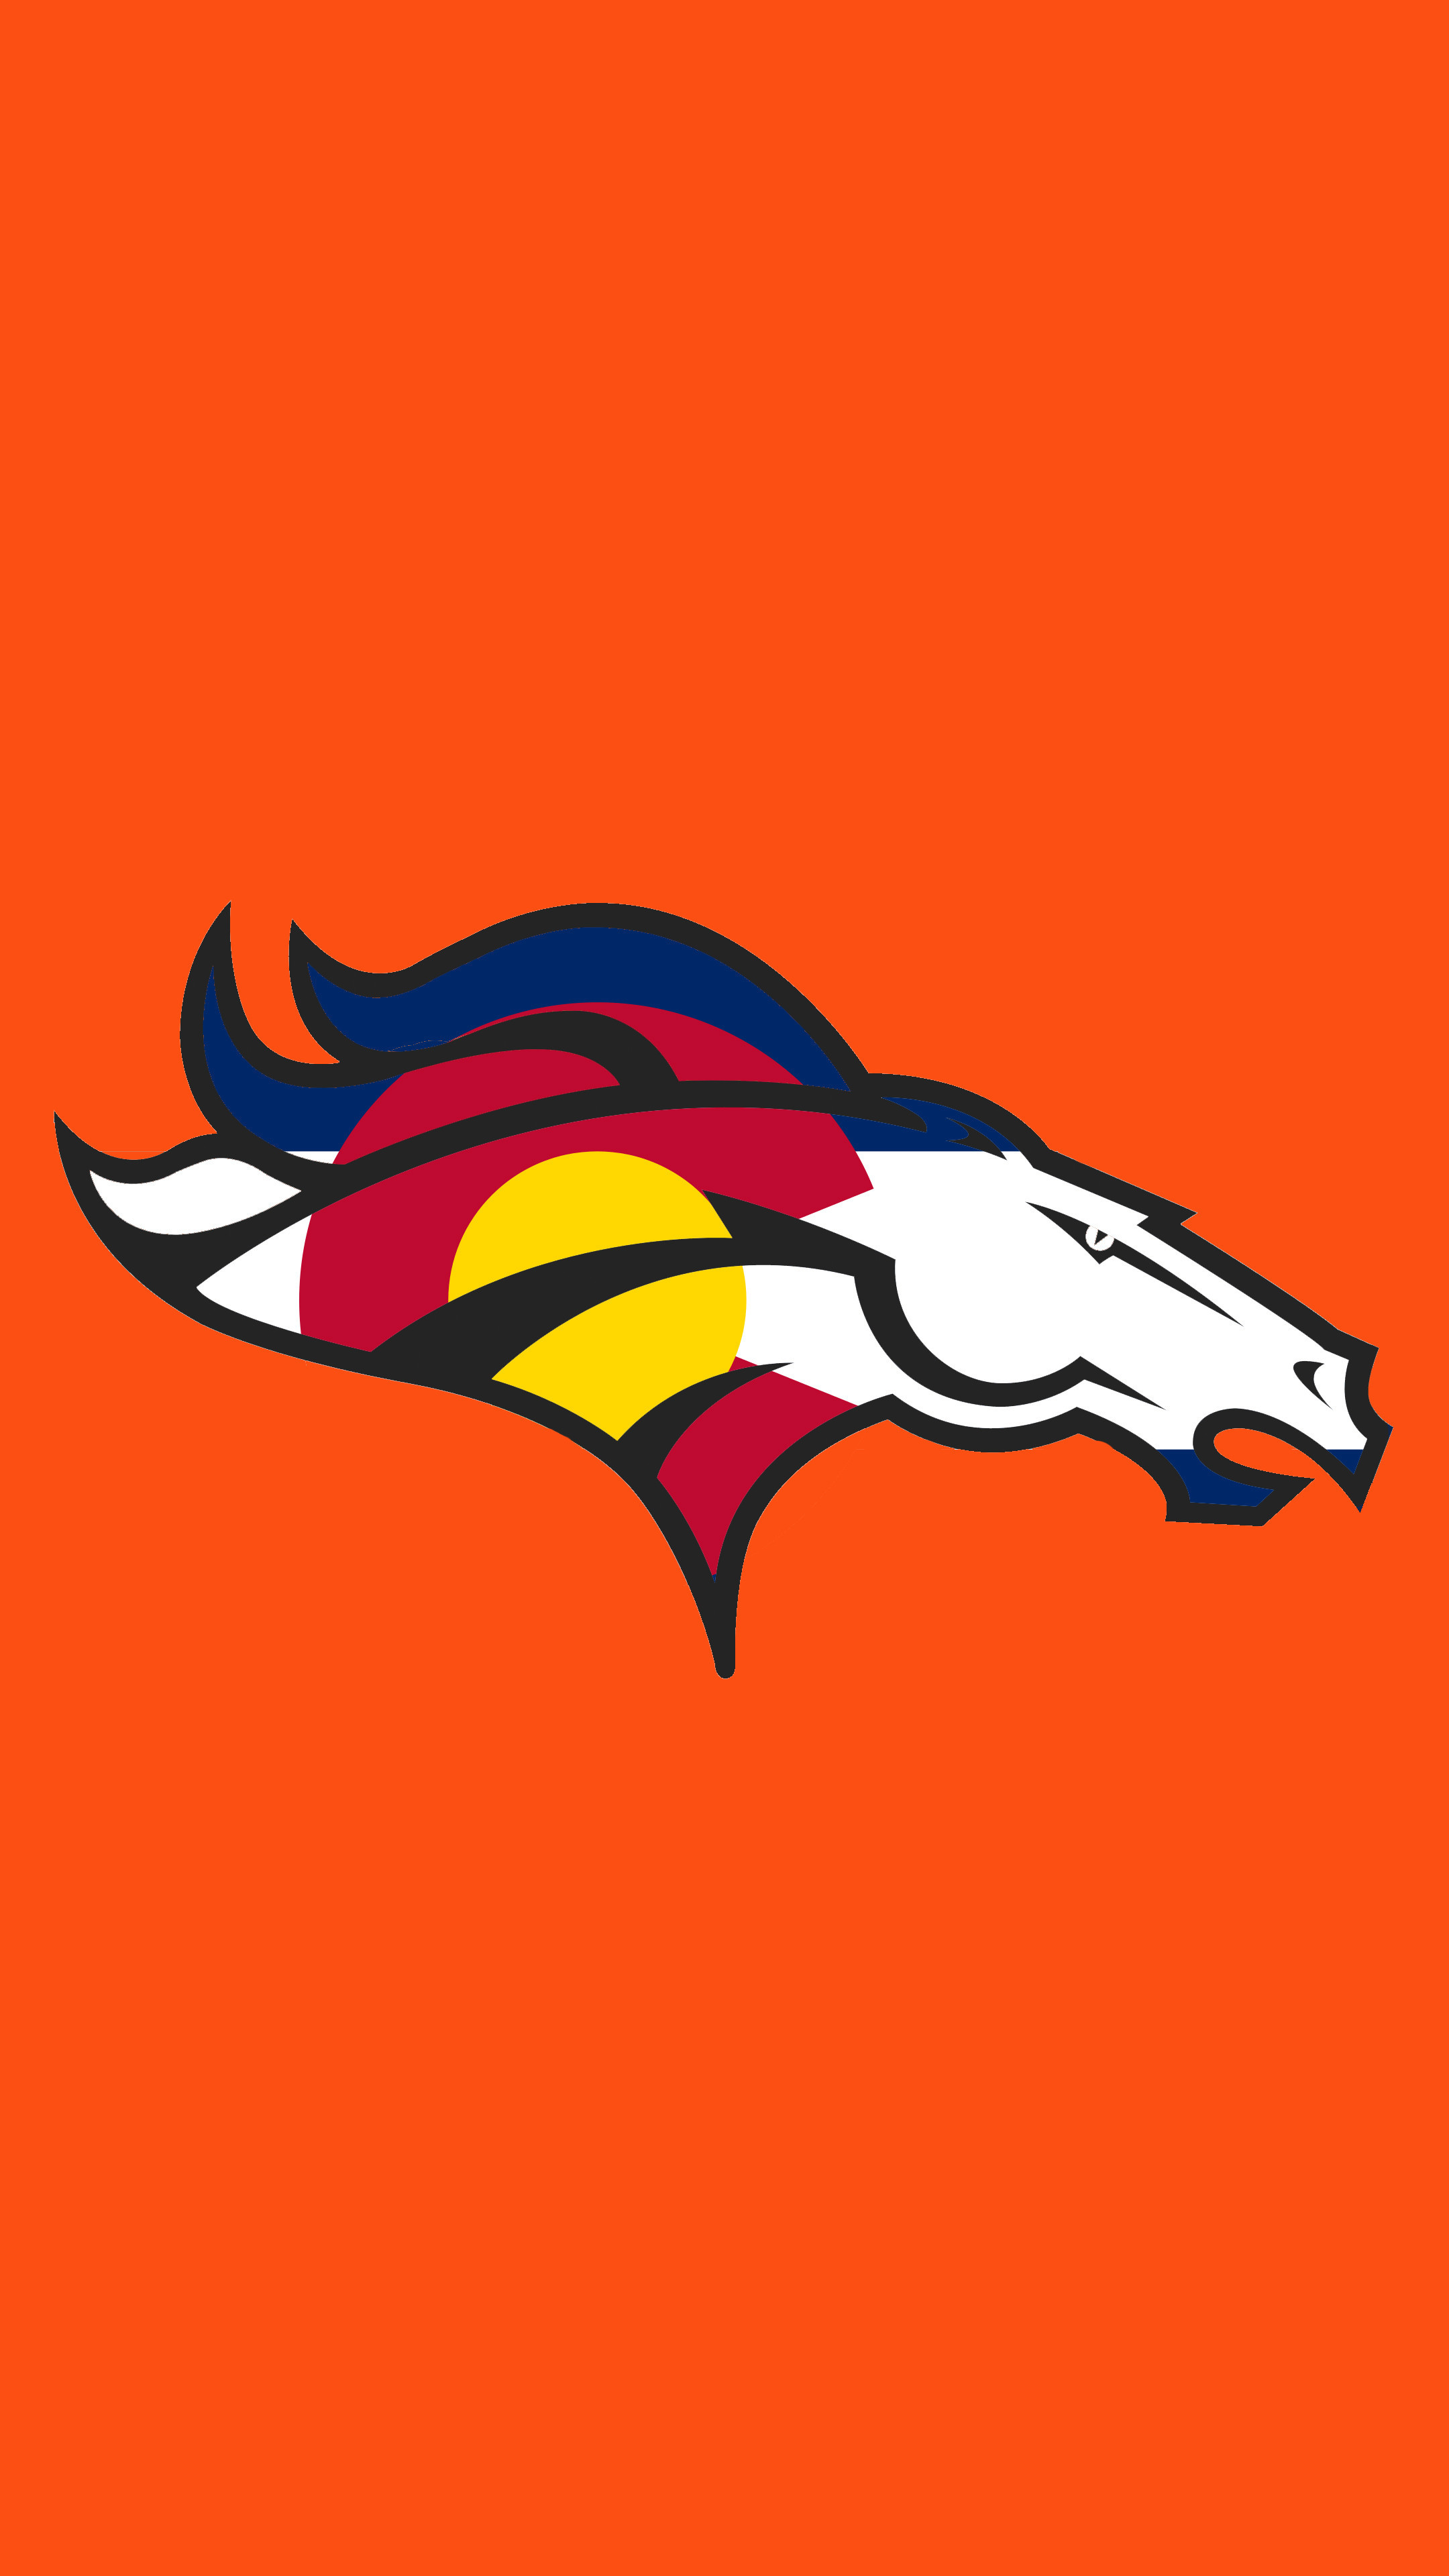 Res: 2160x3840, Gentleman an iPhone wallpaper for you all DenverBroncos